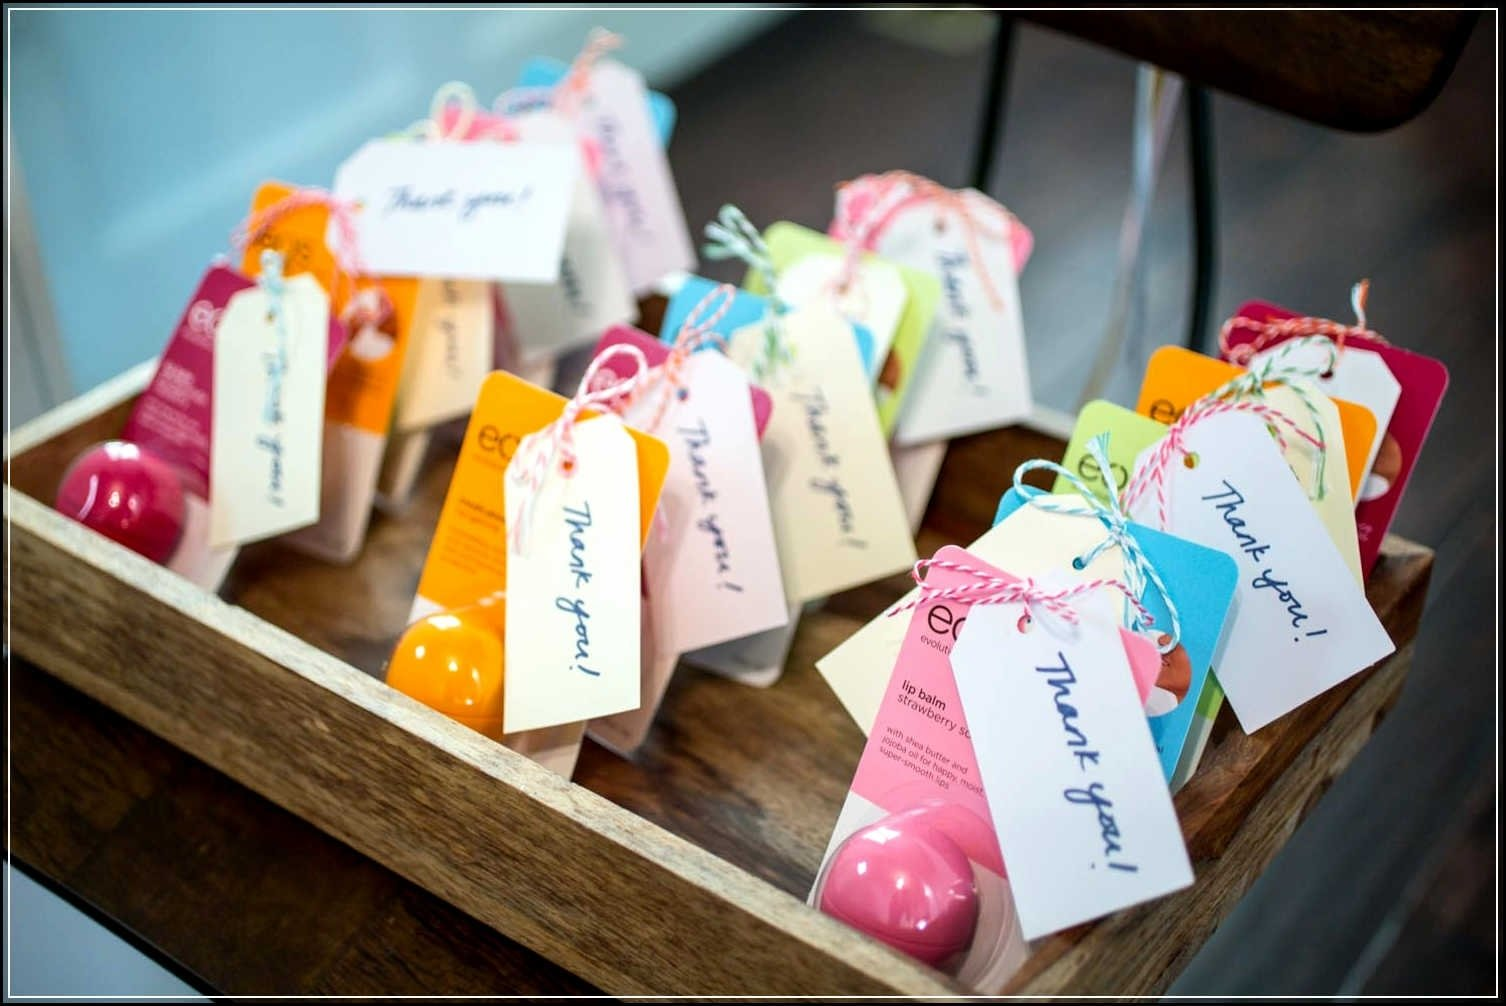 10 Great Gift Ideas For Bridal Shower bridal shower gift ideas for games inspiring bridal shower ideas 1 2020